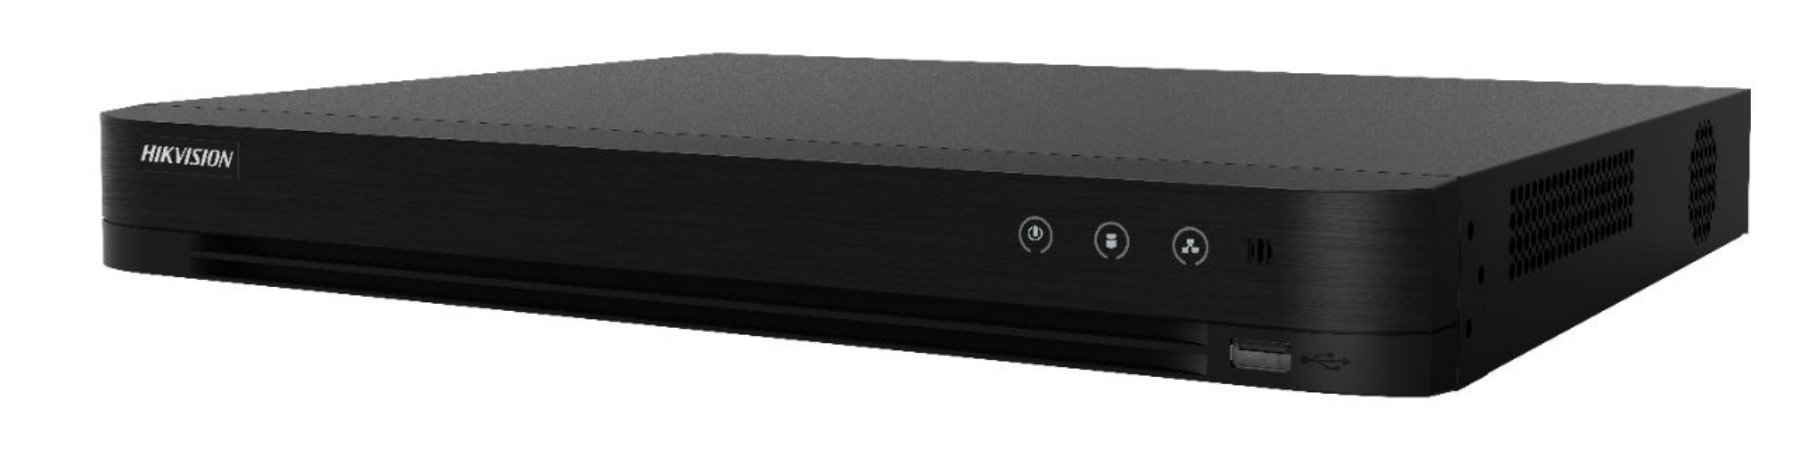 HIKVISION DVR 16CH 2HDD 1080P H.265 PRO+ IDS-7216HQHI-M2/S